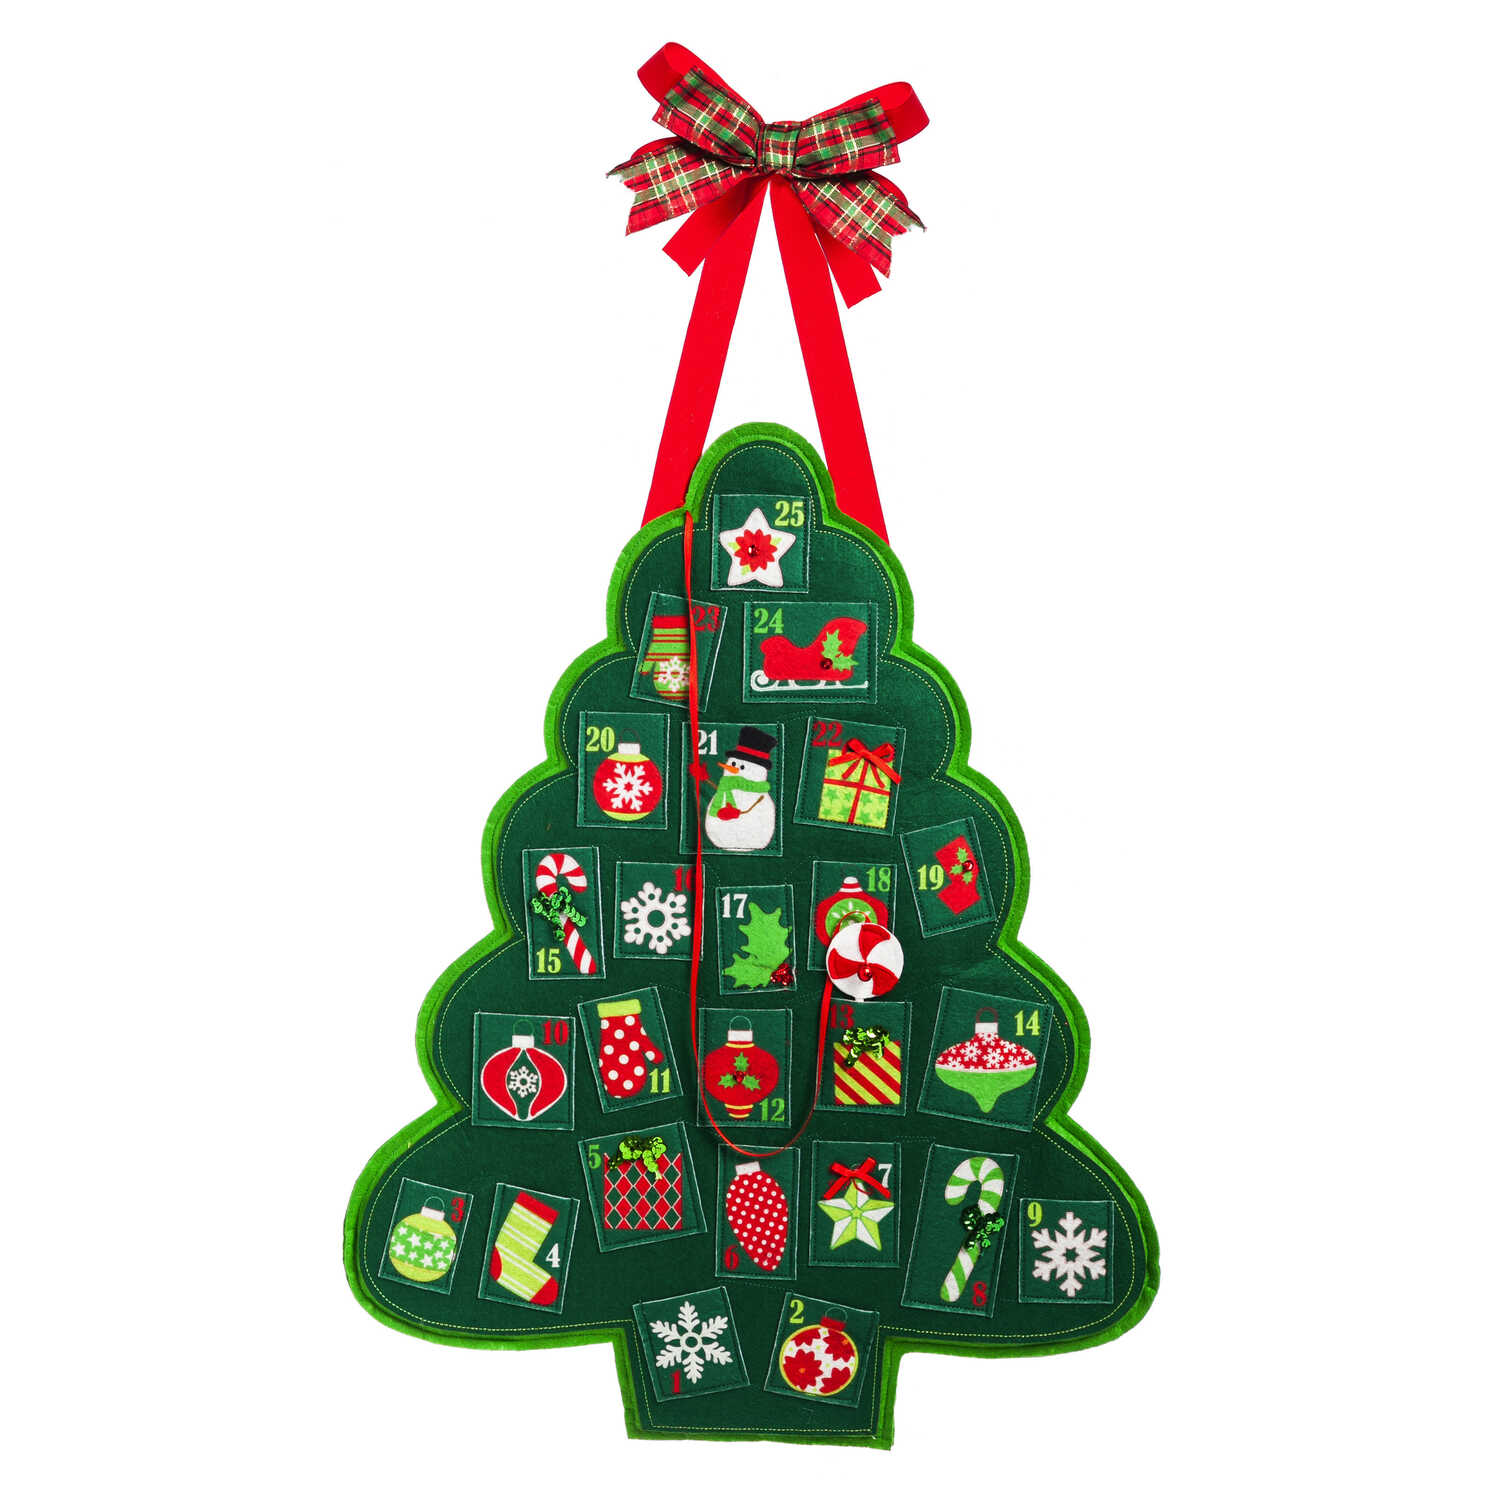 Evergreen  Christmas Advent Tree Calendar  Door Hanger  Green  Felt  1 pk